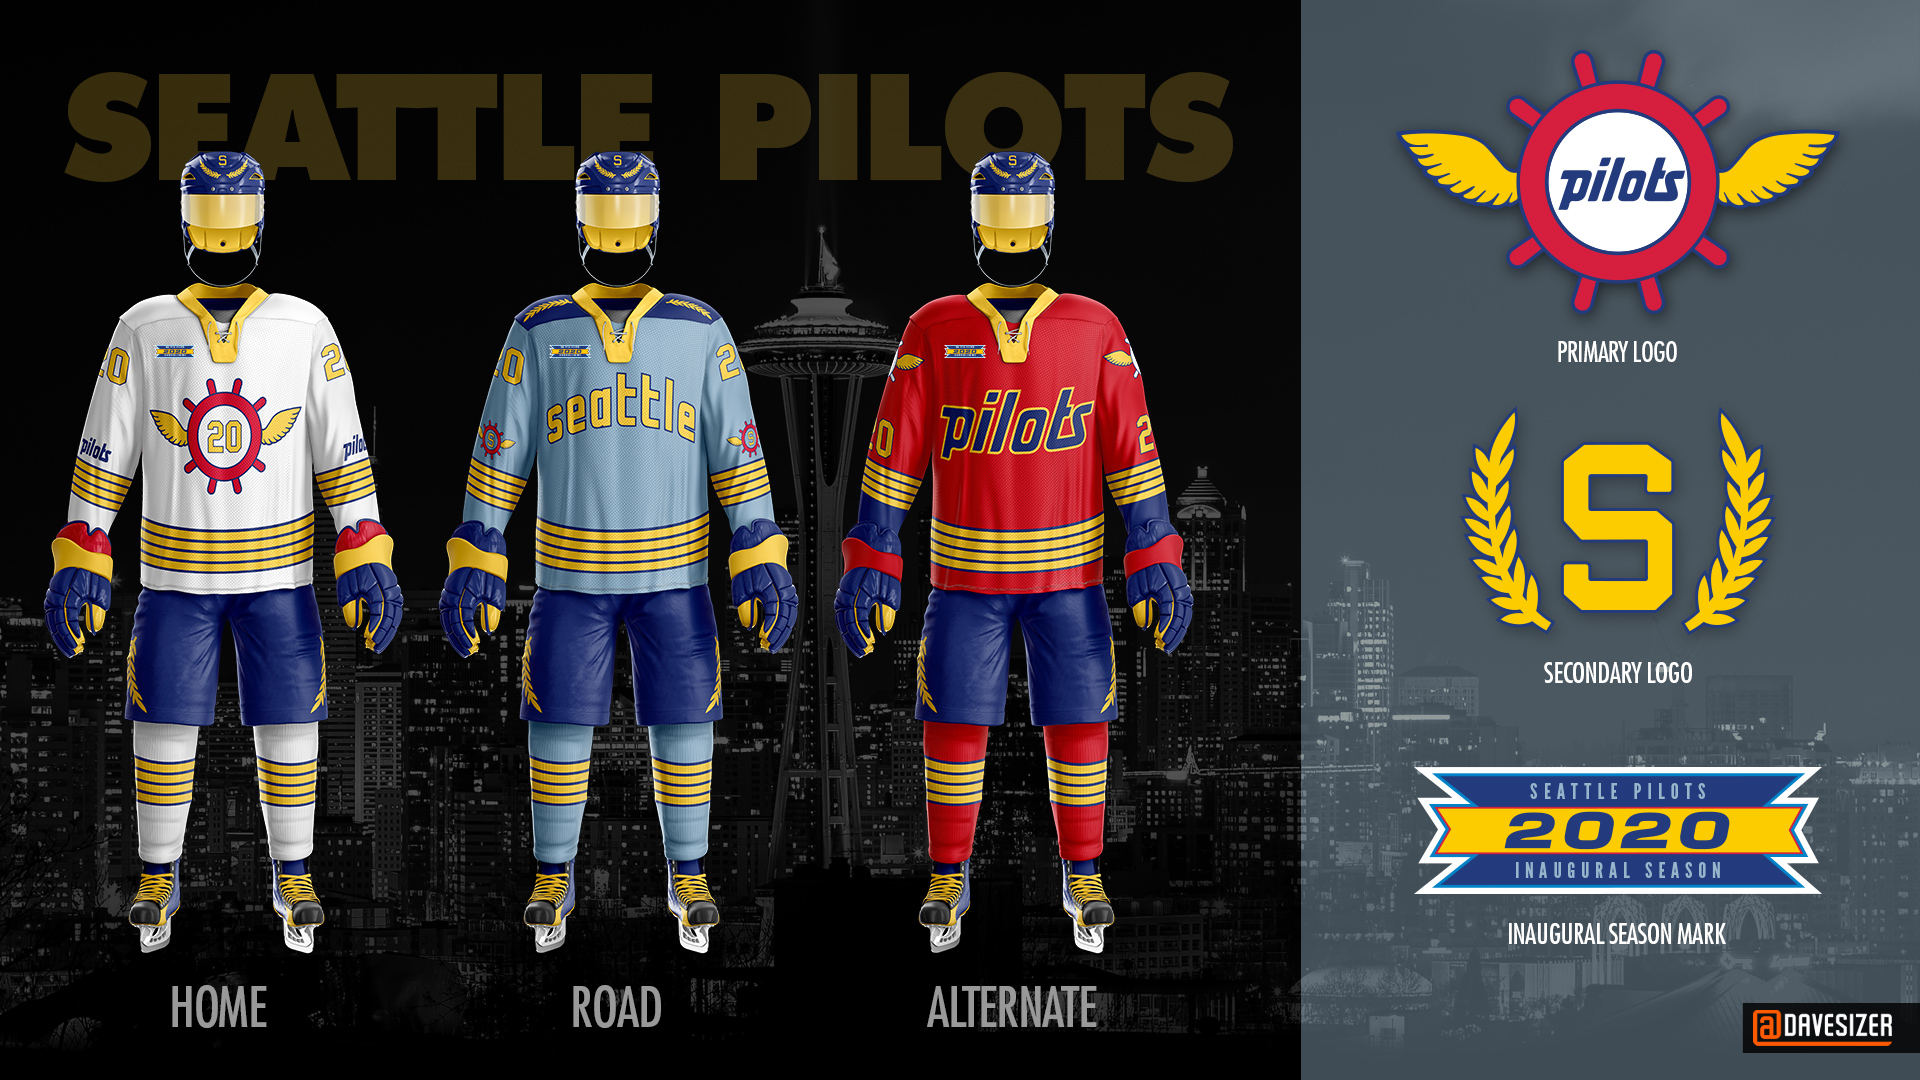 51bd72e9cf7 Uni Watch delivers the winning entries for the Seattle NHL design ...